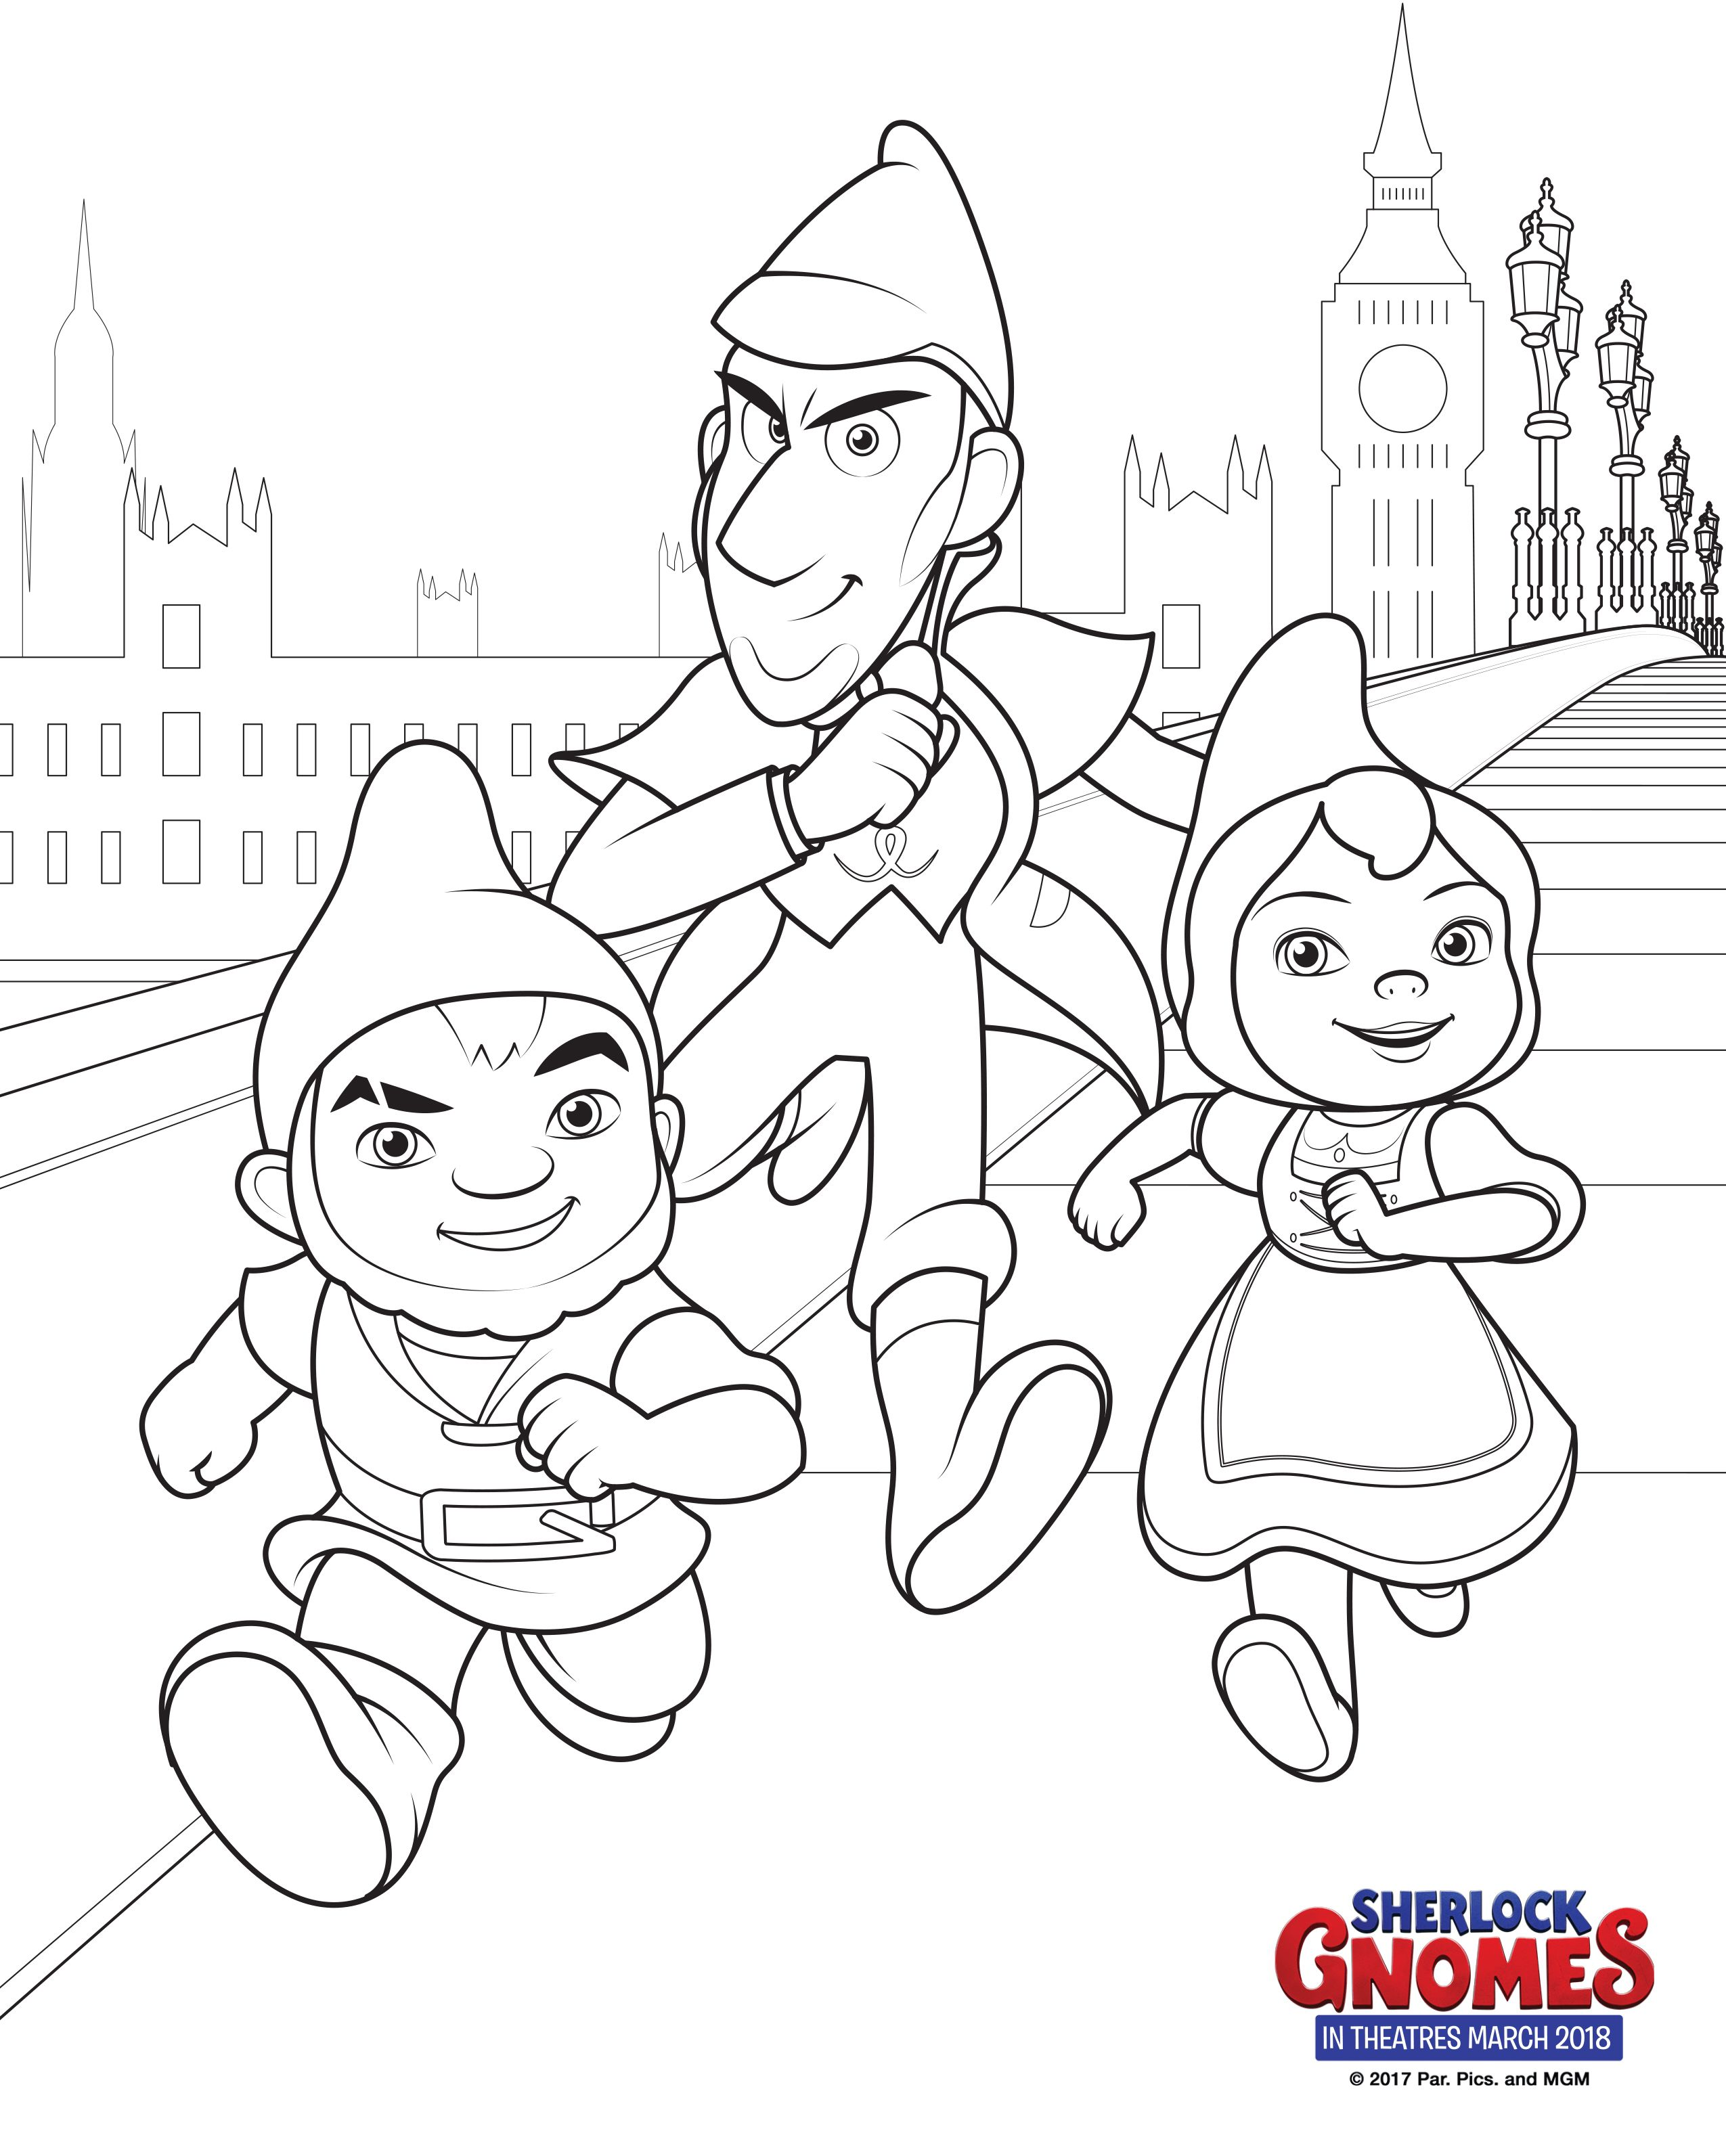 Sherlock Gnomes Coloring Pages + Books Cartoon coloring